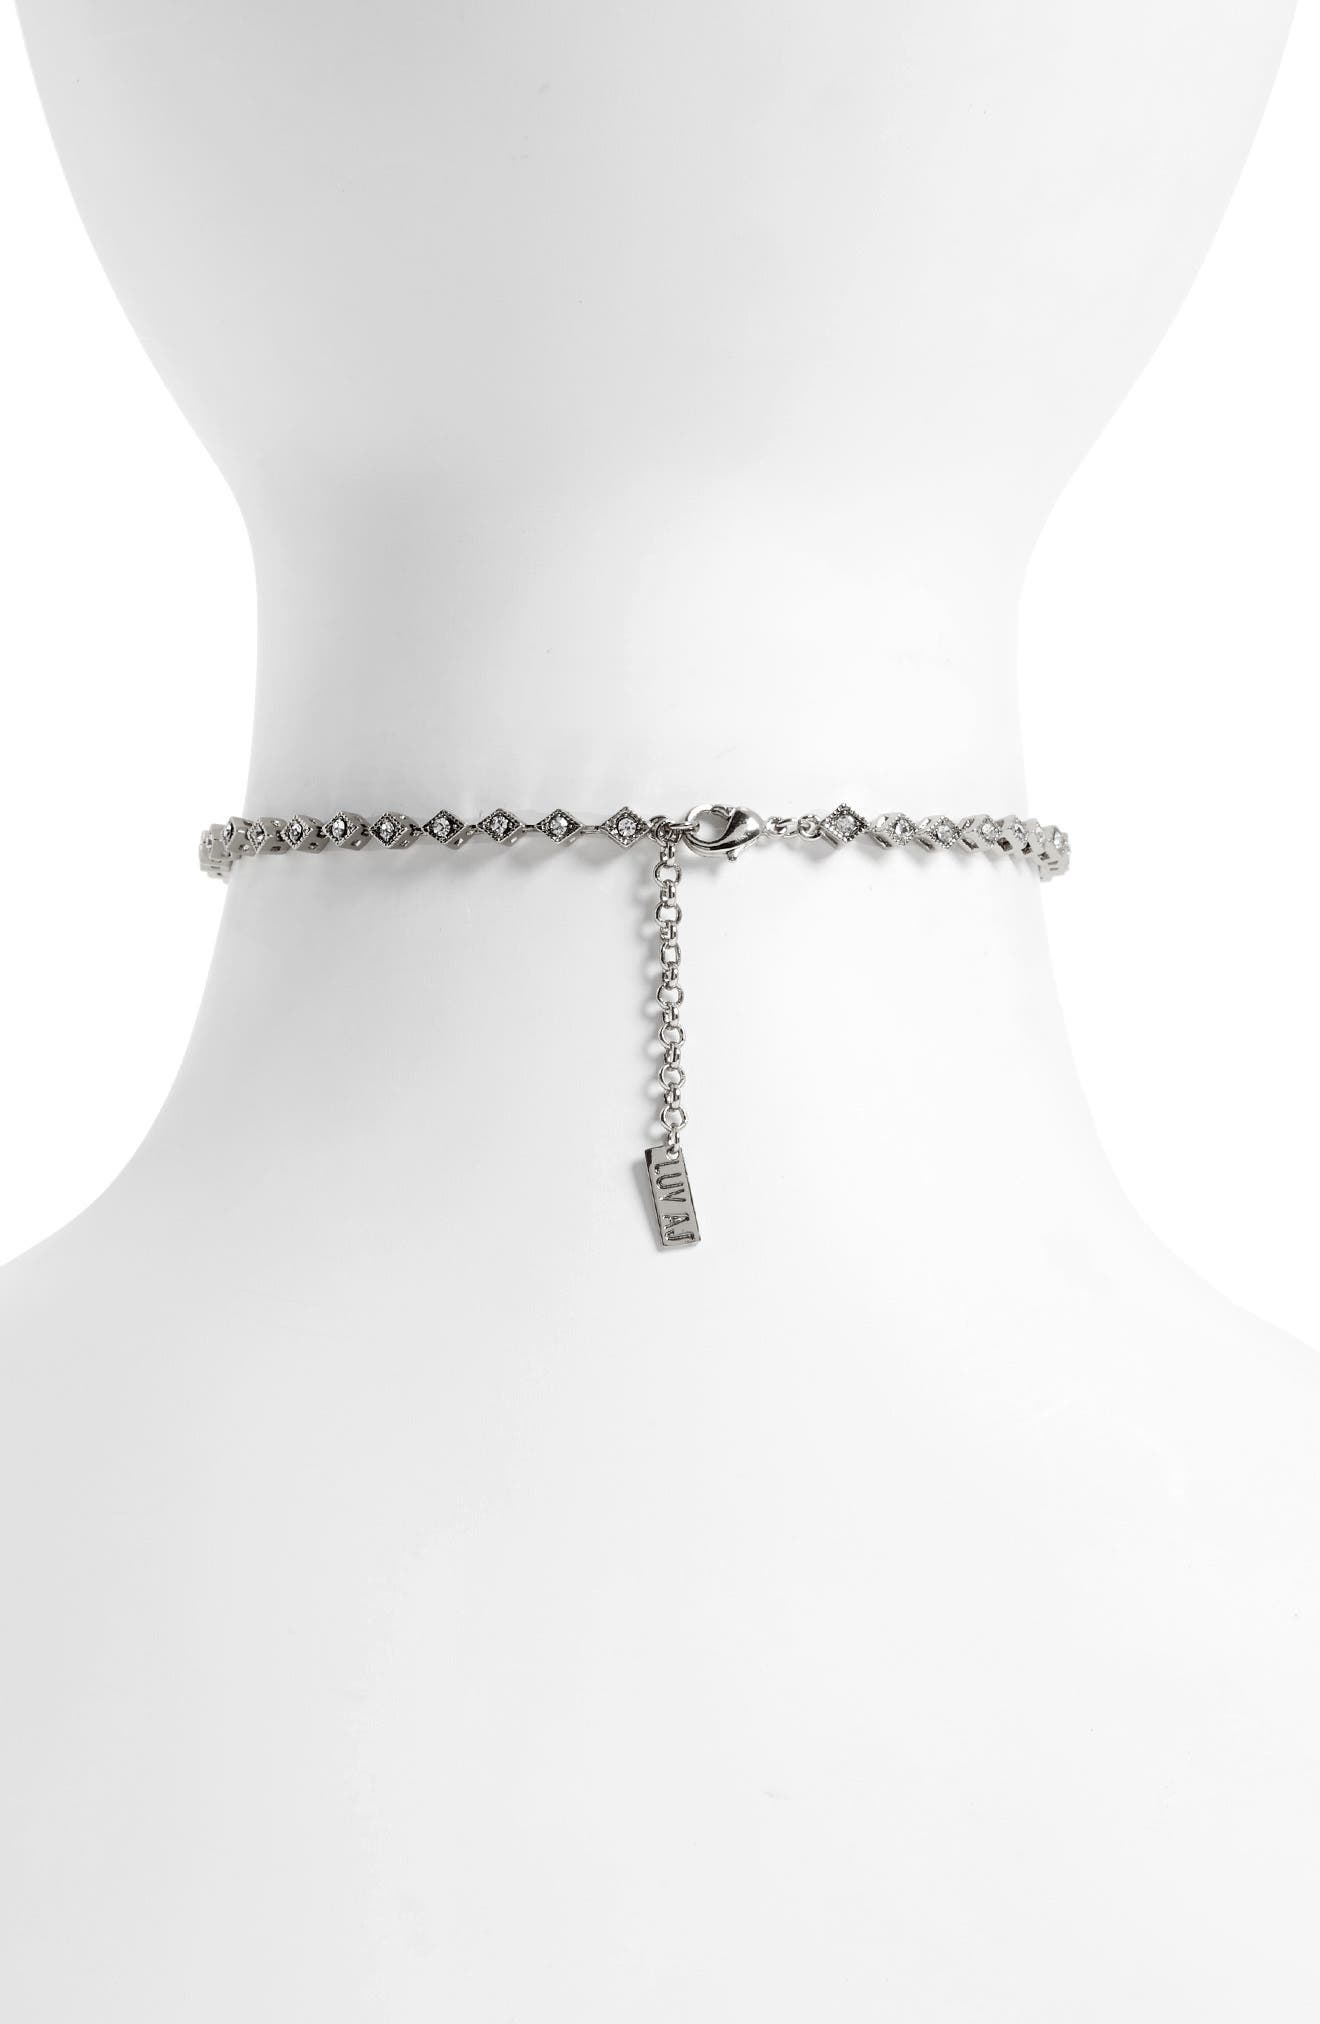 Crystal Cubic Zirconia Choker Necklace,                             Alternate thumbnail 2, color,                             040